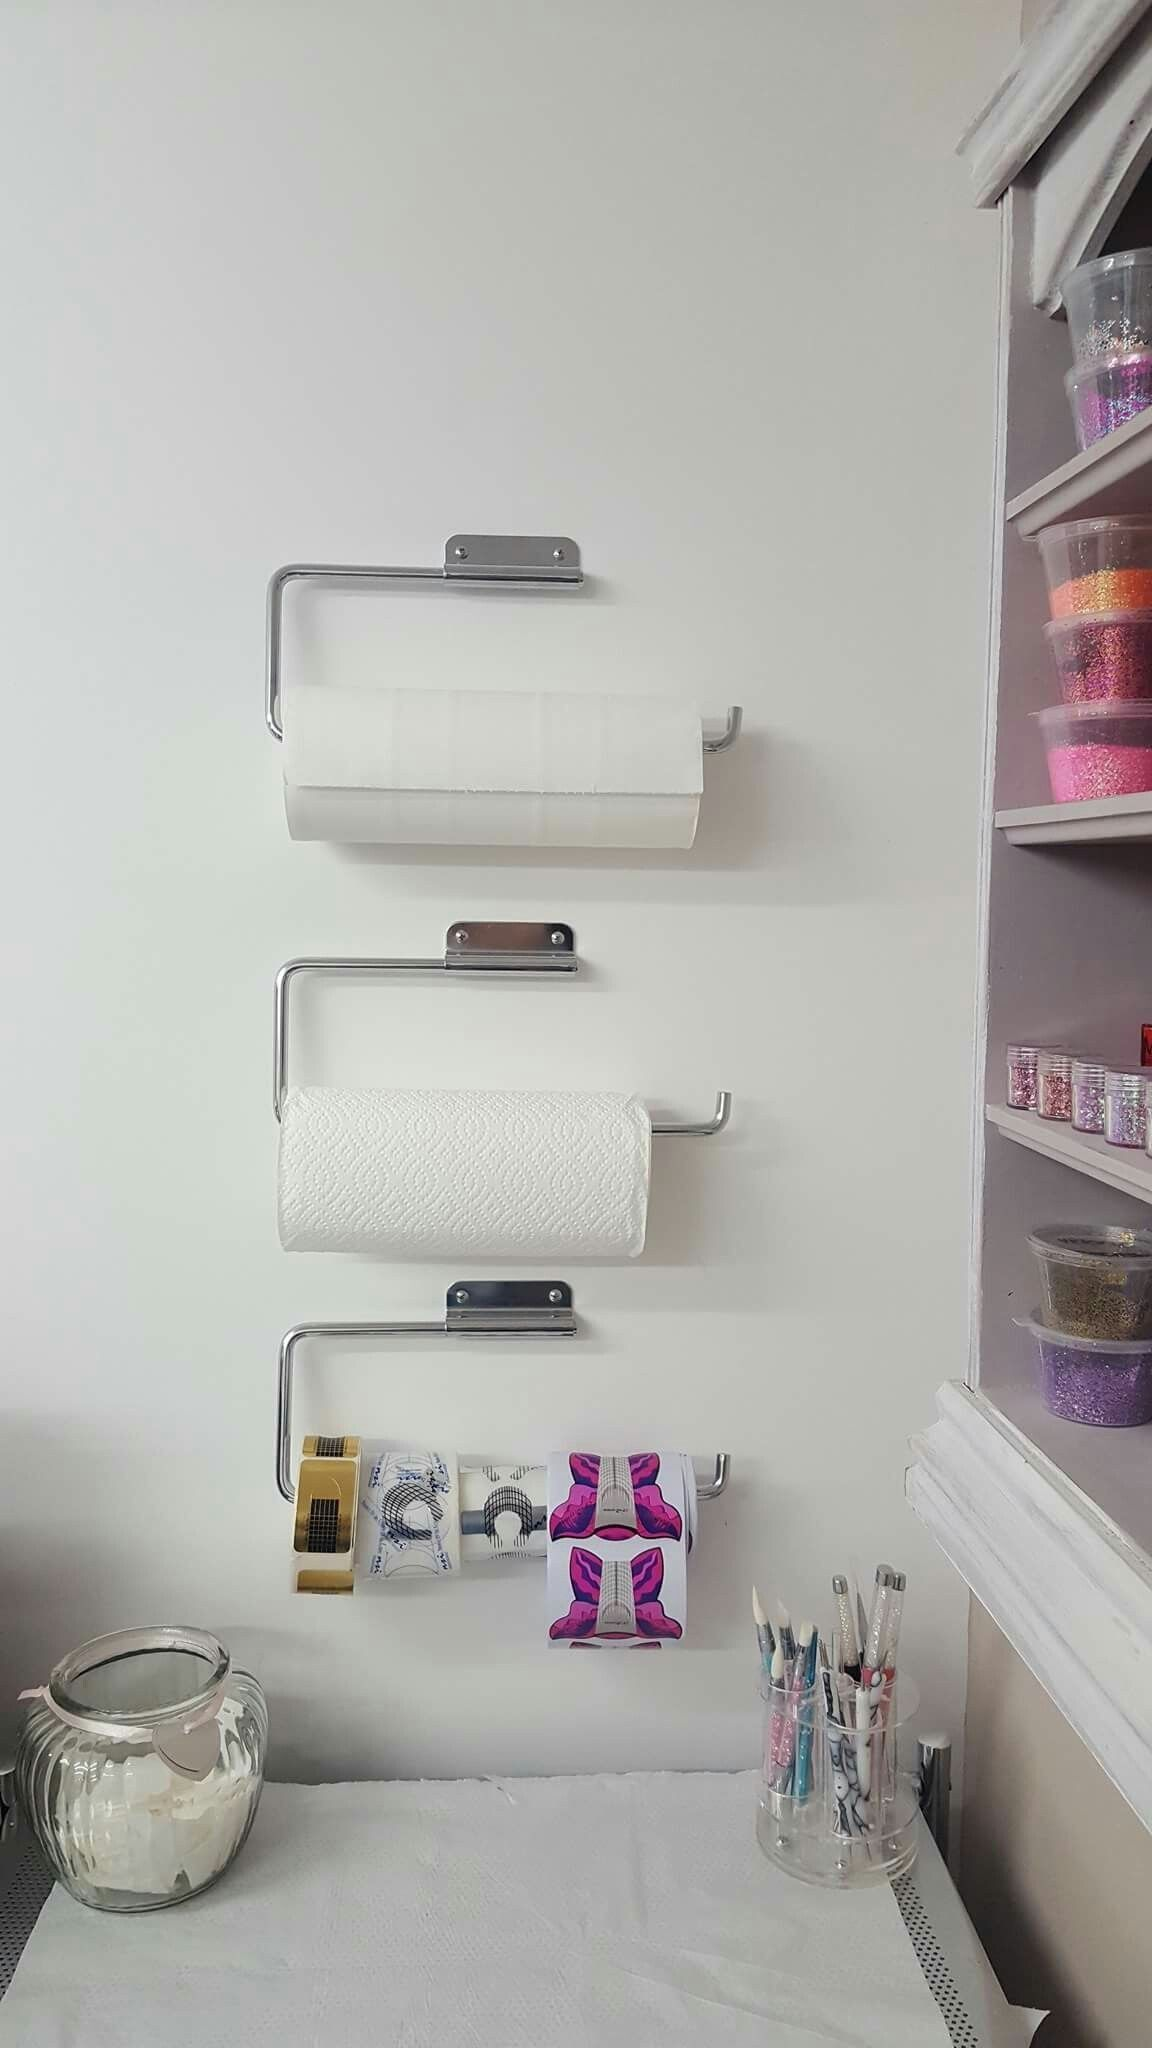 GREAT idea for storage and organization in your home nail